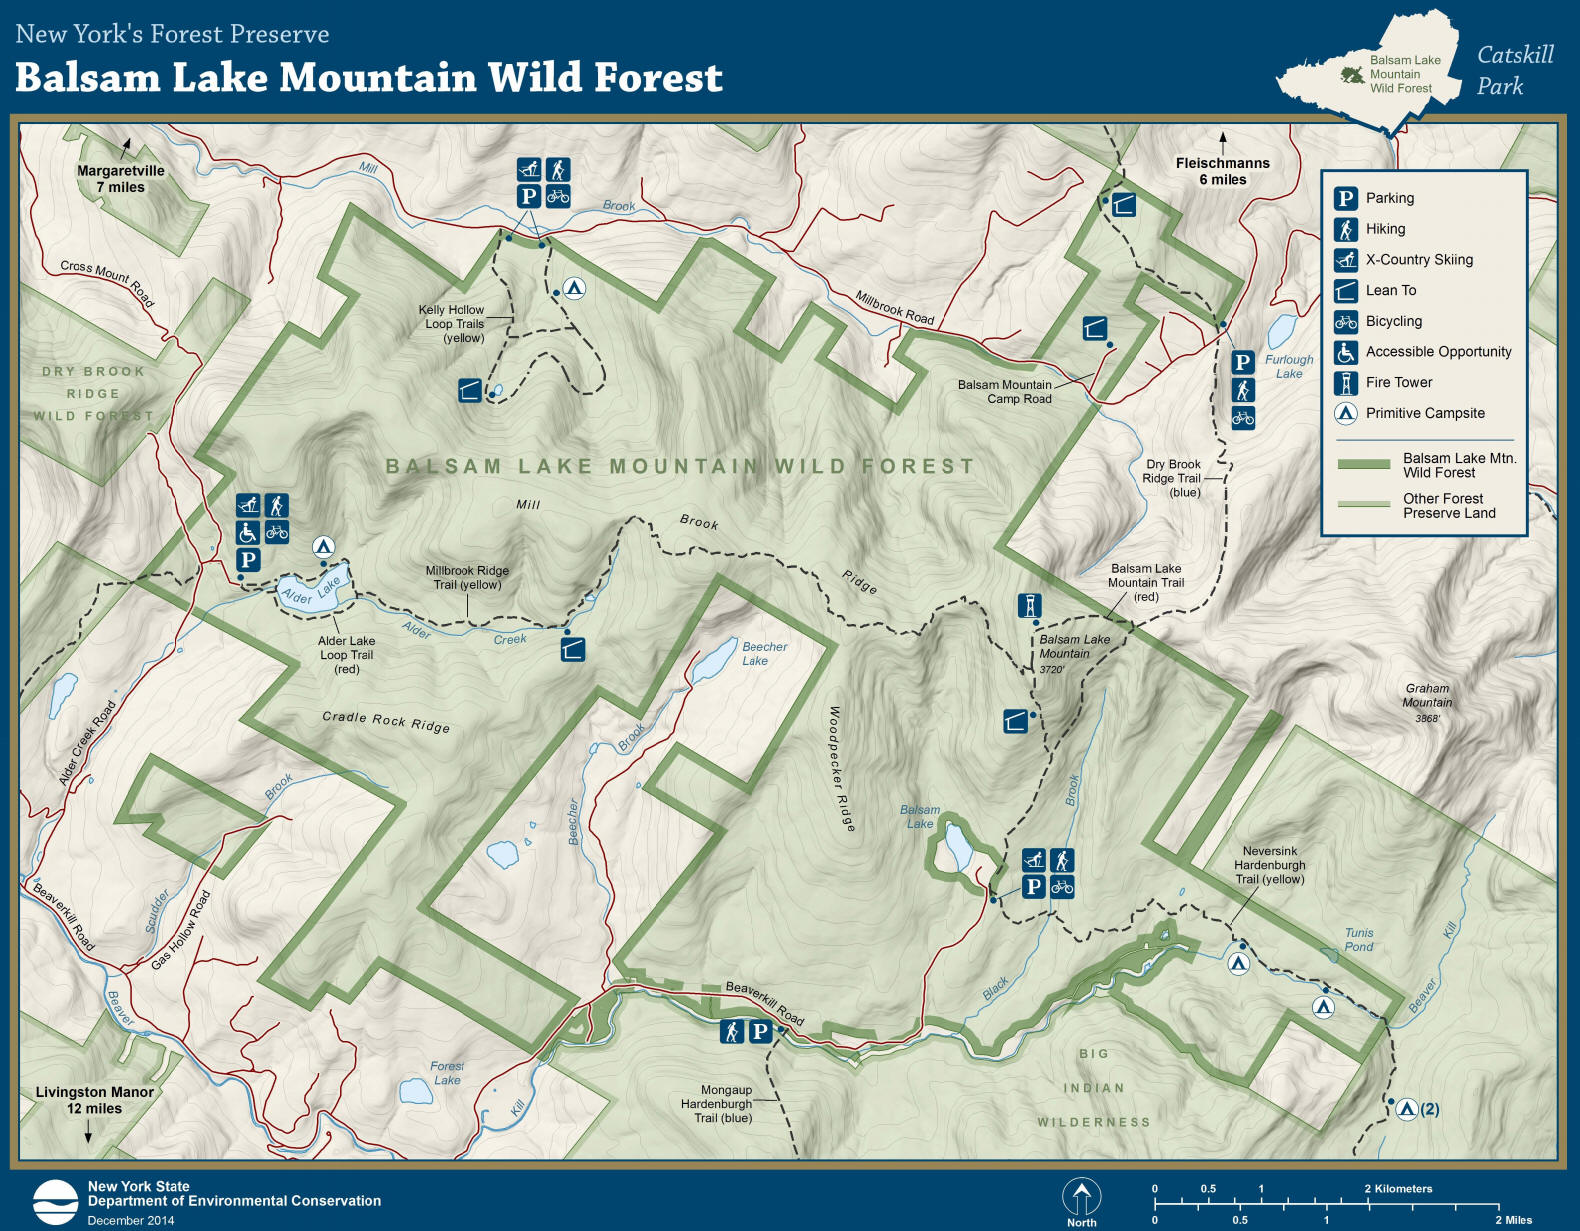 Balsam Lake Mtn Wild Forest on map of lake winnebago, map of lake michigan, map of shawano lake, map of lake joseph, map of utah lake, map of lake superior, map of lake minocqua, map of woman lake, map of lake pend oreille,